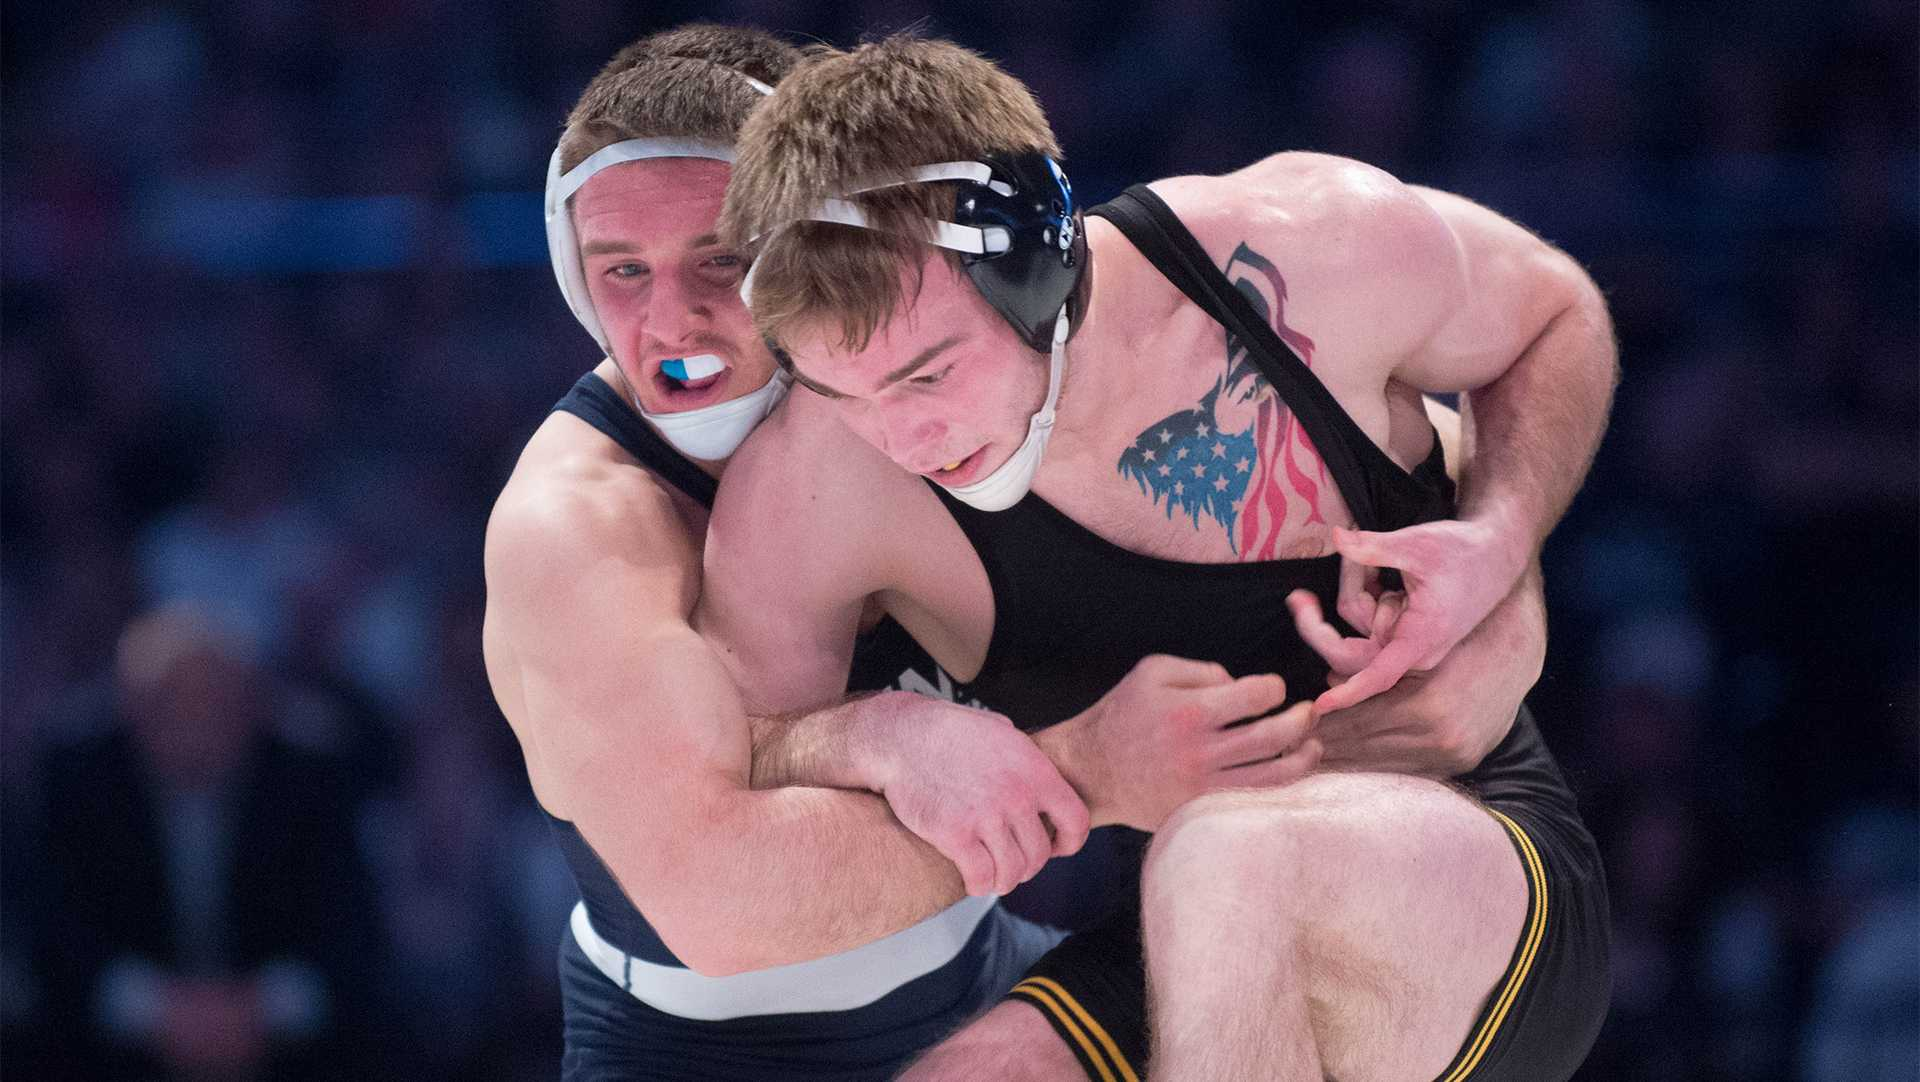 Penn State's Zain Retherford puts Iowa's Brandon Sorenson in a hold during the match at the Bryce Jordan Center on Satuday, Feb. 10.